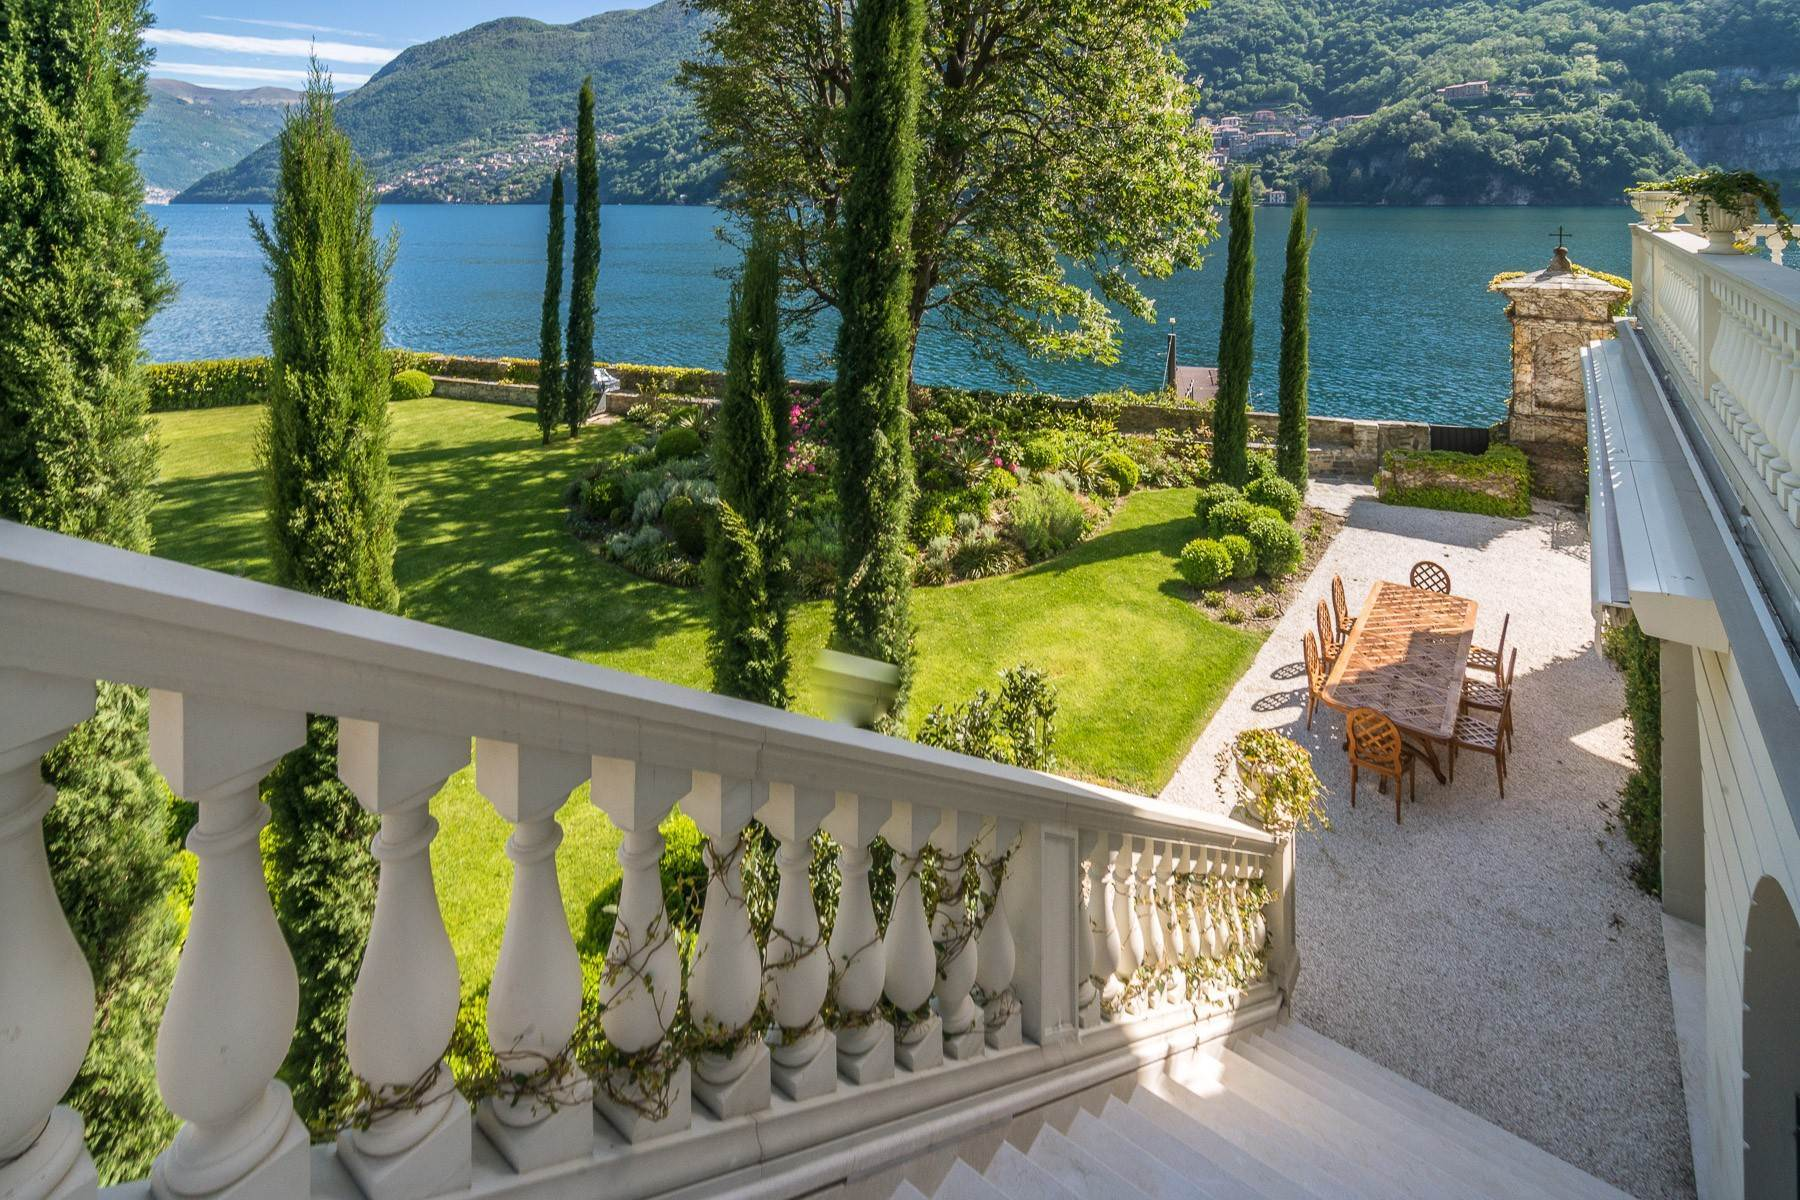 9. Other Residential Homes at Laglio, Como, Italy